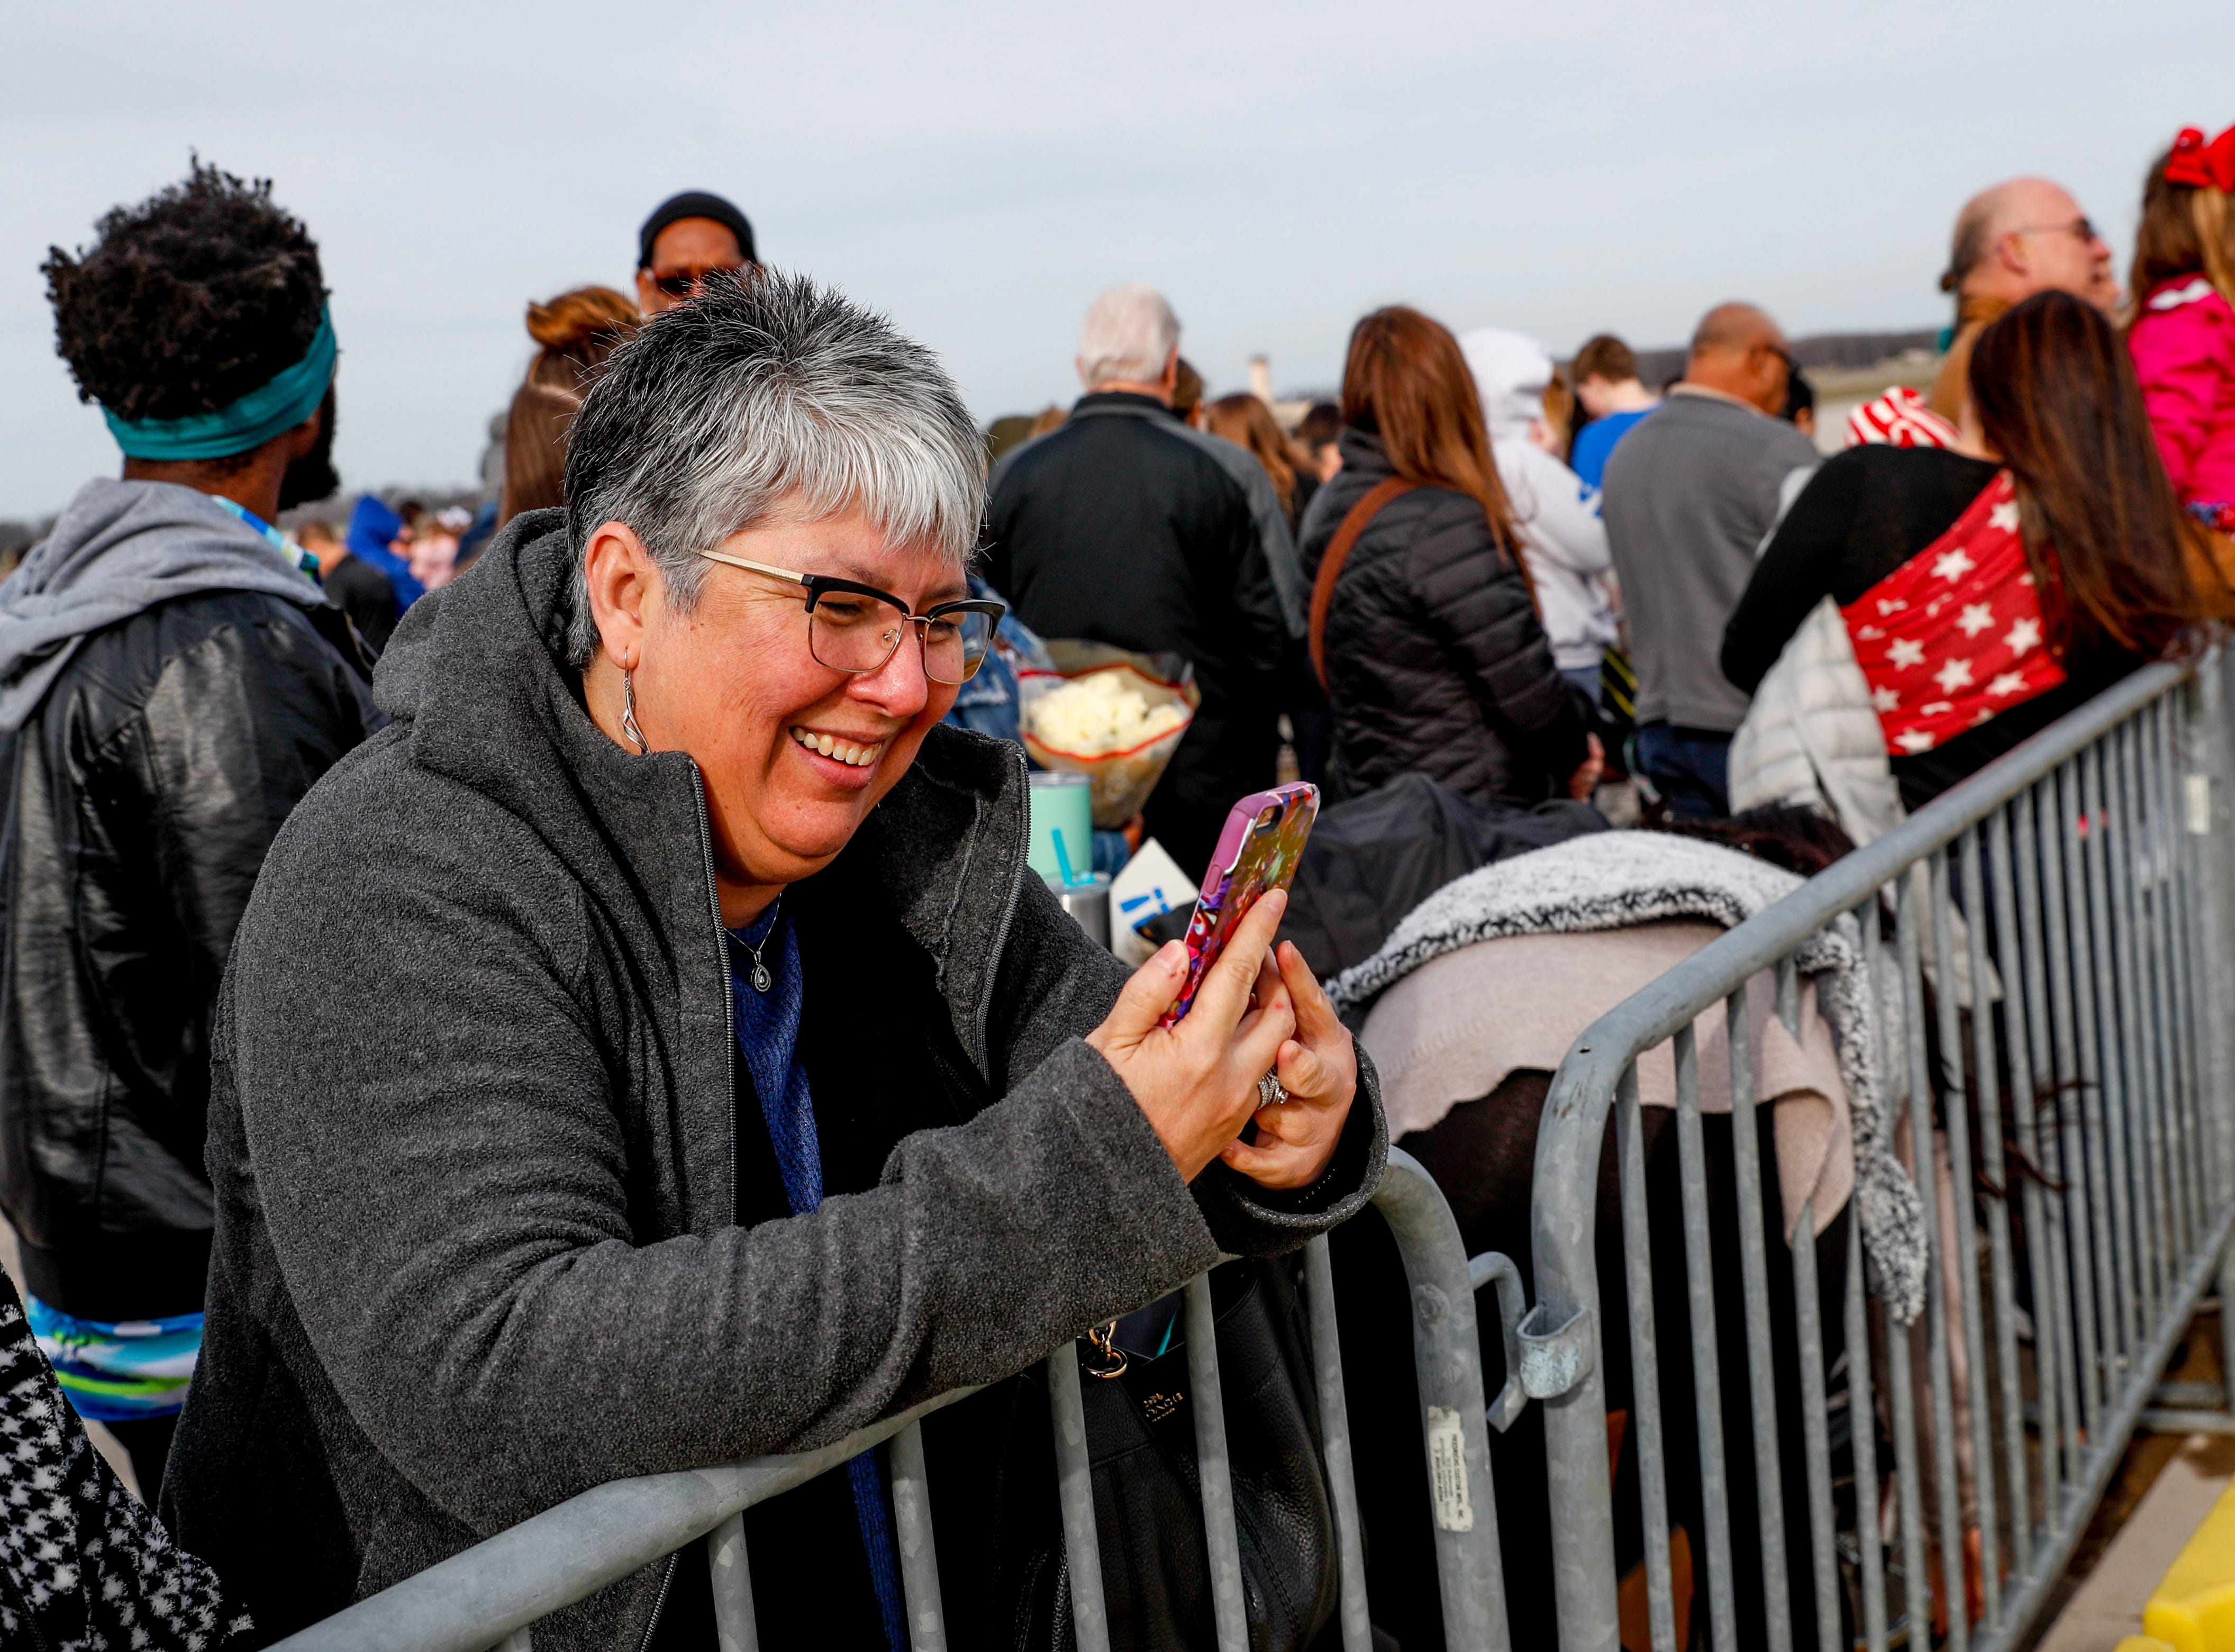 Barbarah Martinez video chats with her son's girlfriend to stream the return of her son during the return of soldiers from the 101st Combat Aviation Brigade of 101st Airborne Division (Air Assault) at Campbell Army Air Field in Fort Campbell, KY., on Sunday, March 10, 2019.